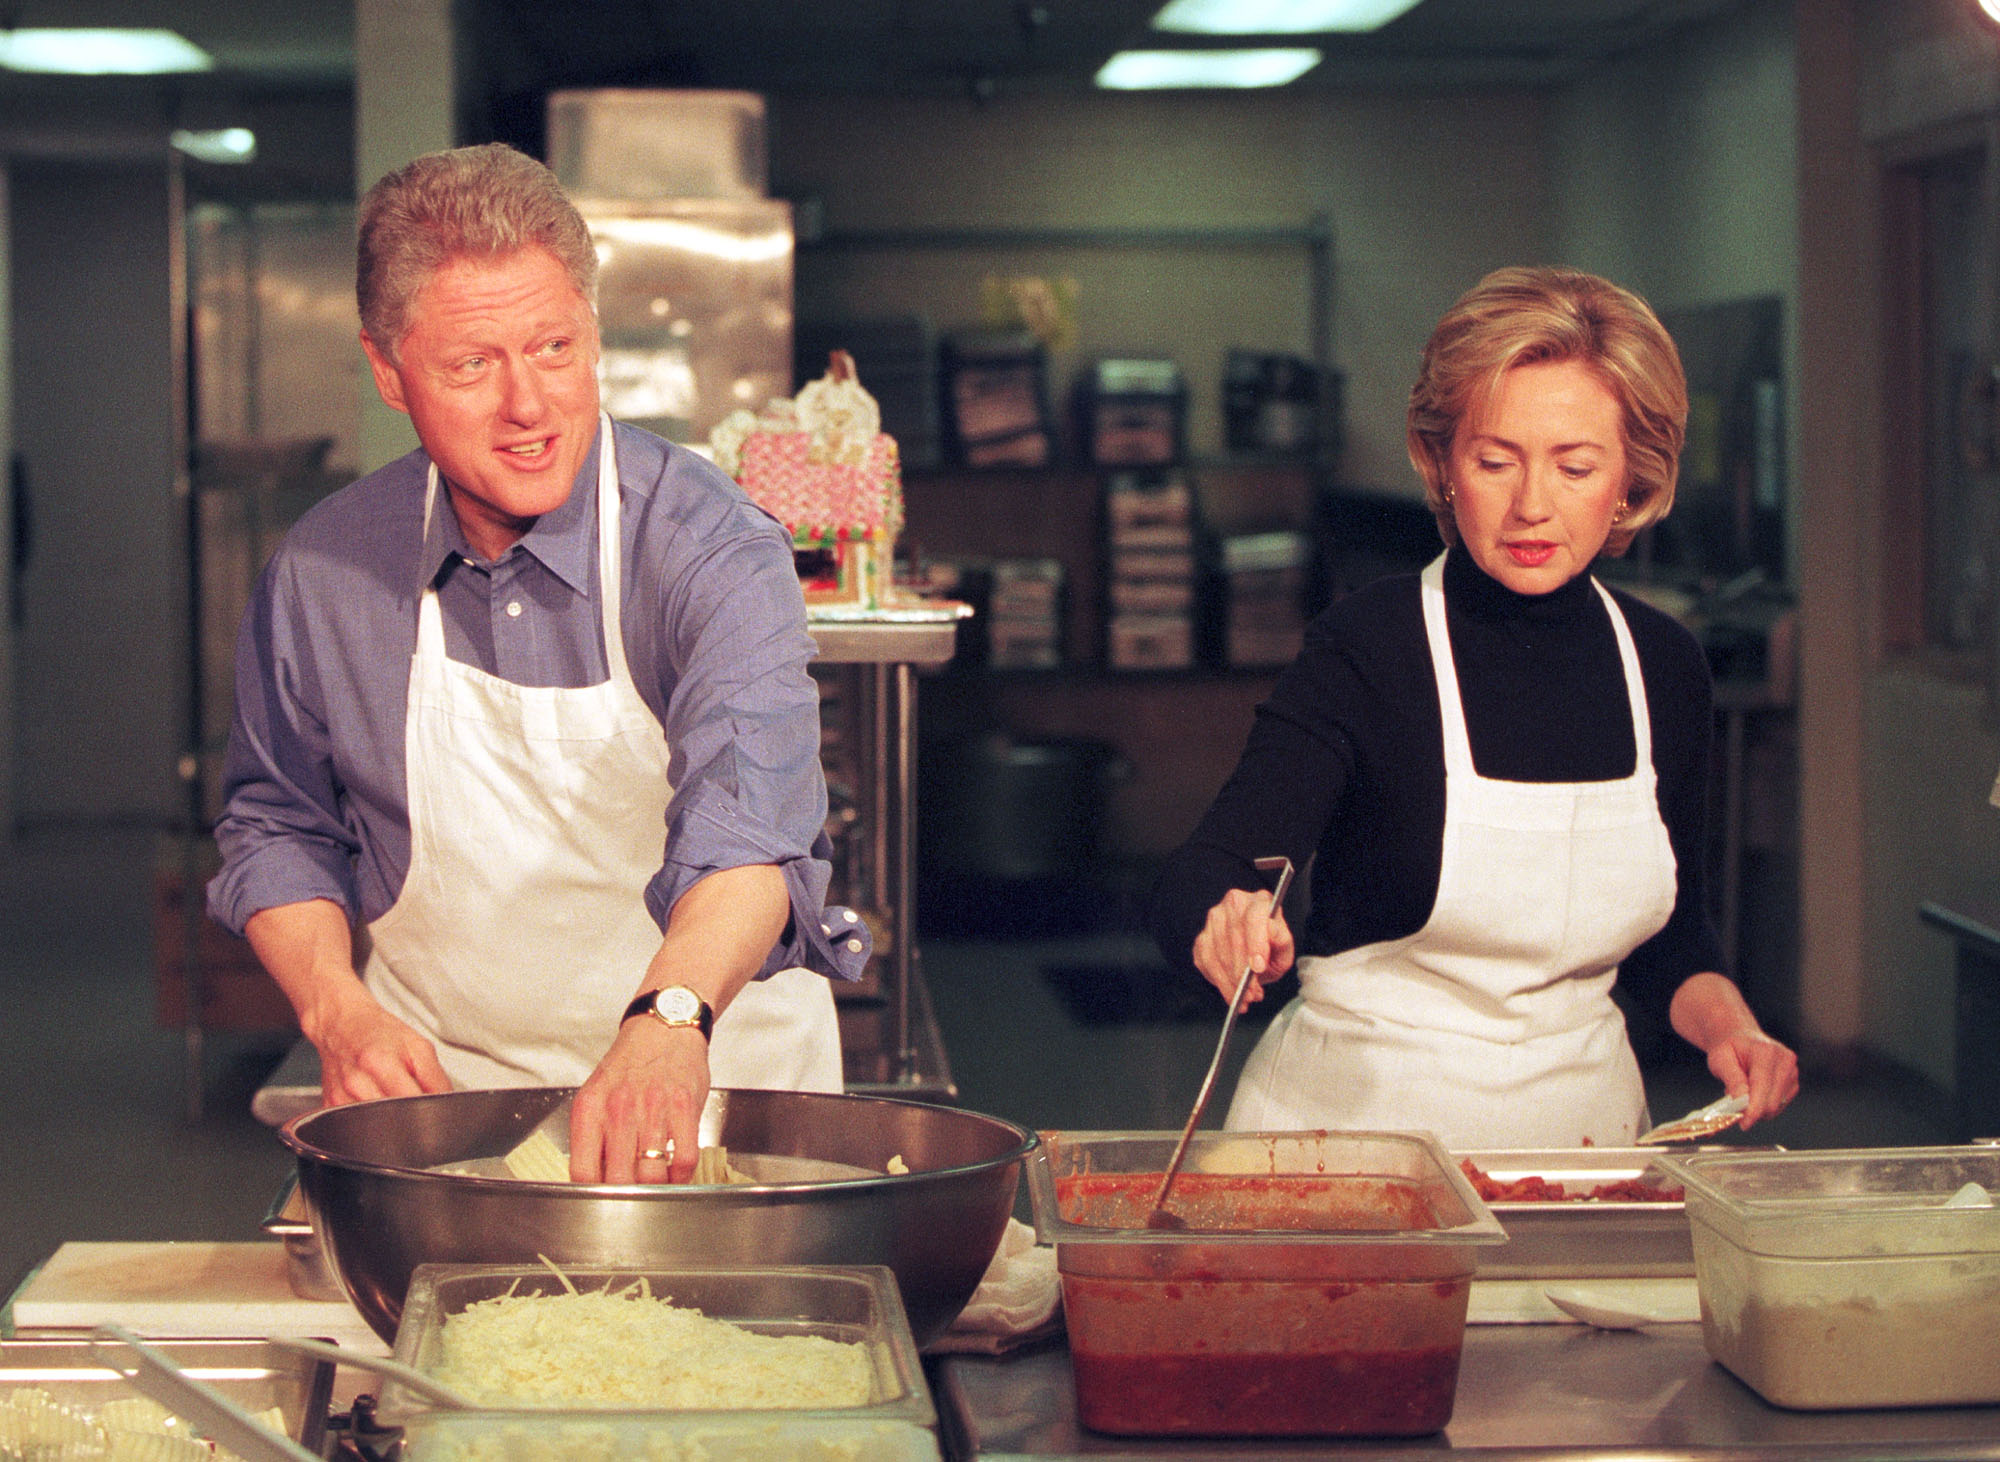 Clintons help out at homeless shelter